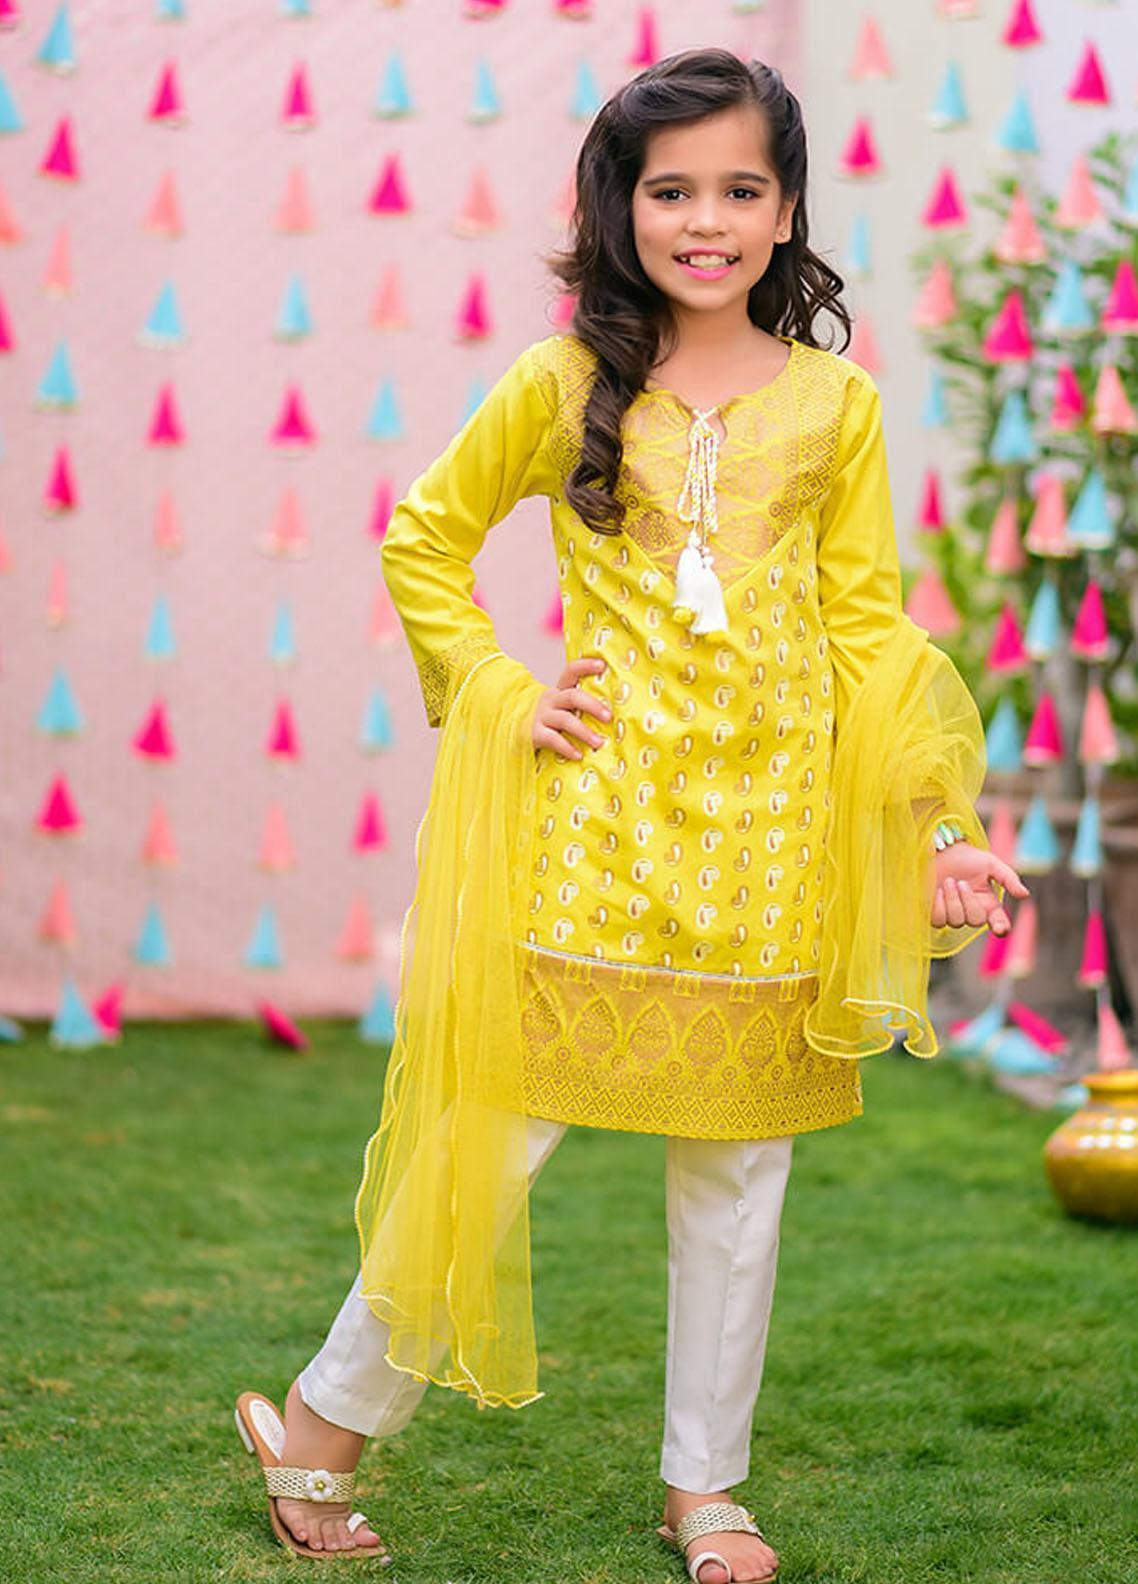 Ochre Cambric Fancy Girls 3 Piece Suits -  OFK 743 Mustard